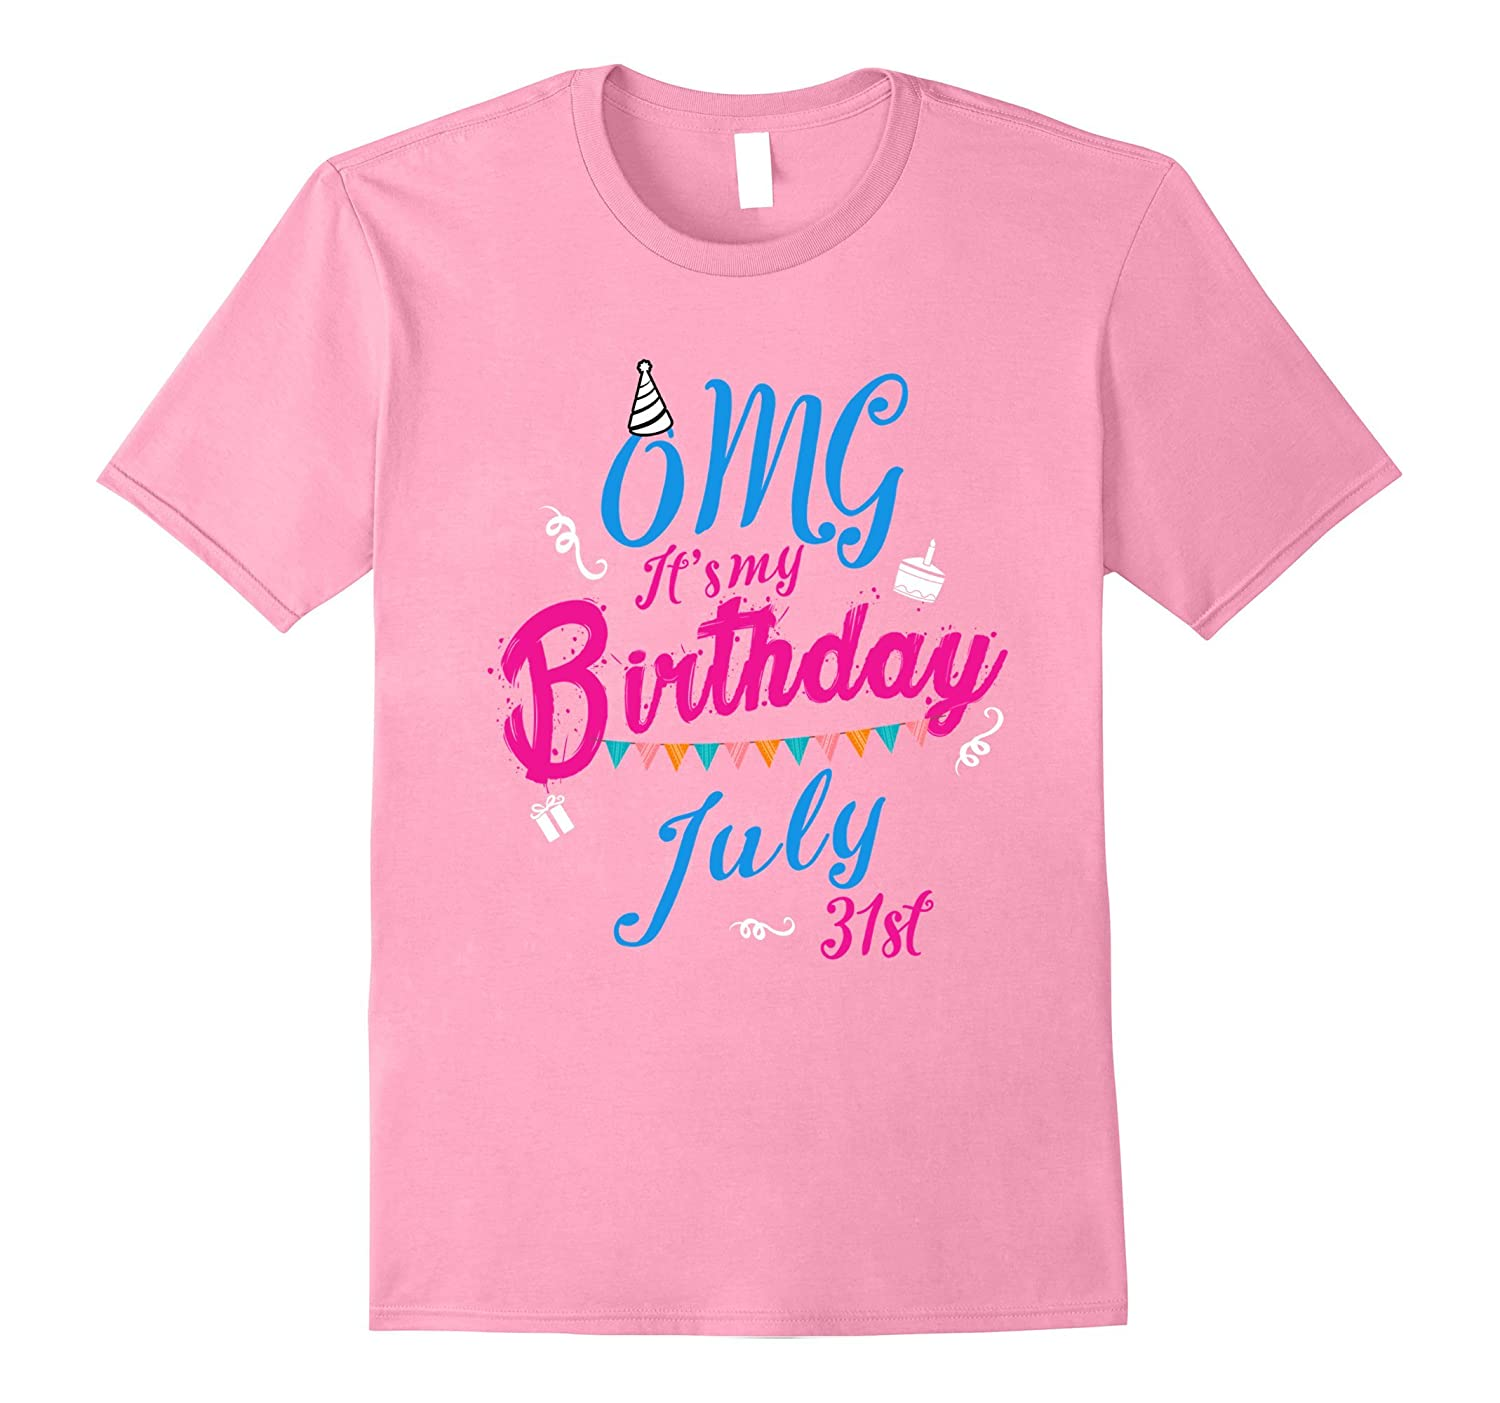 OMG Its My Birthday Legend Queen Born On 31st July T Shirt PL